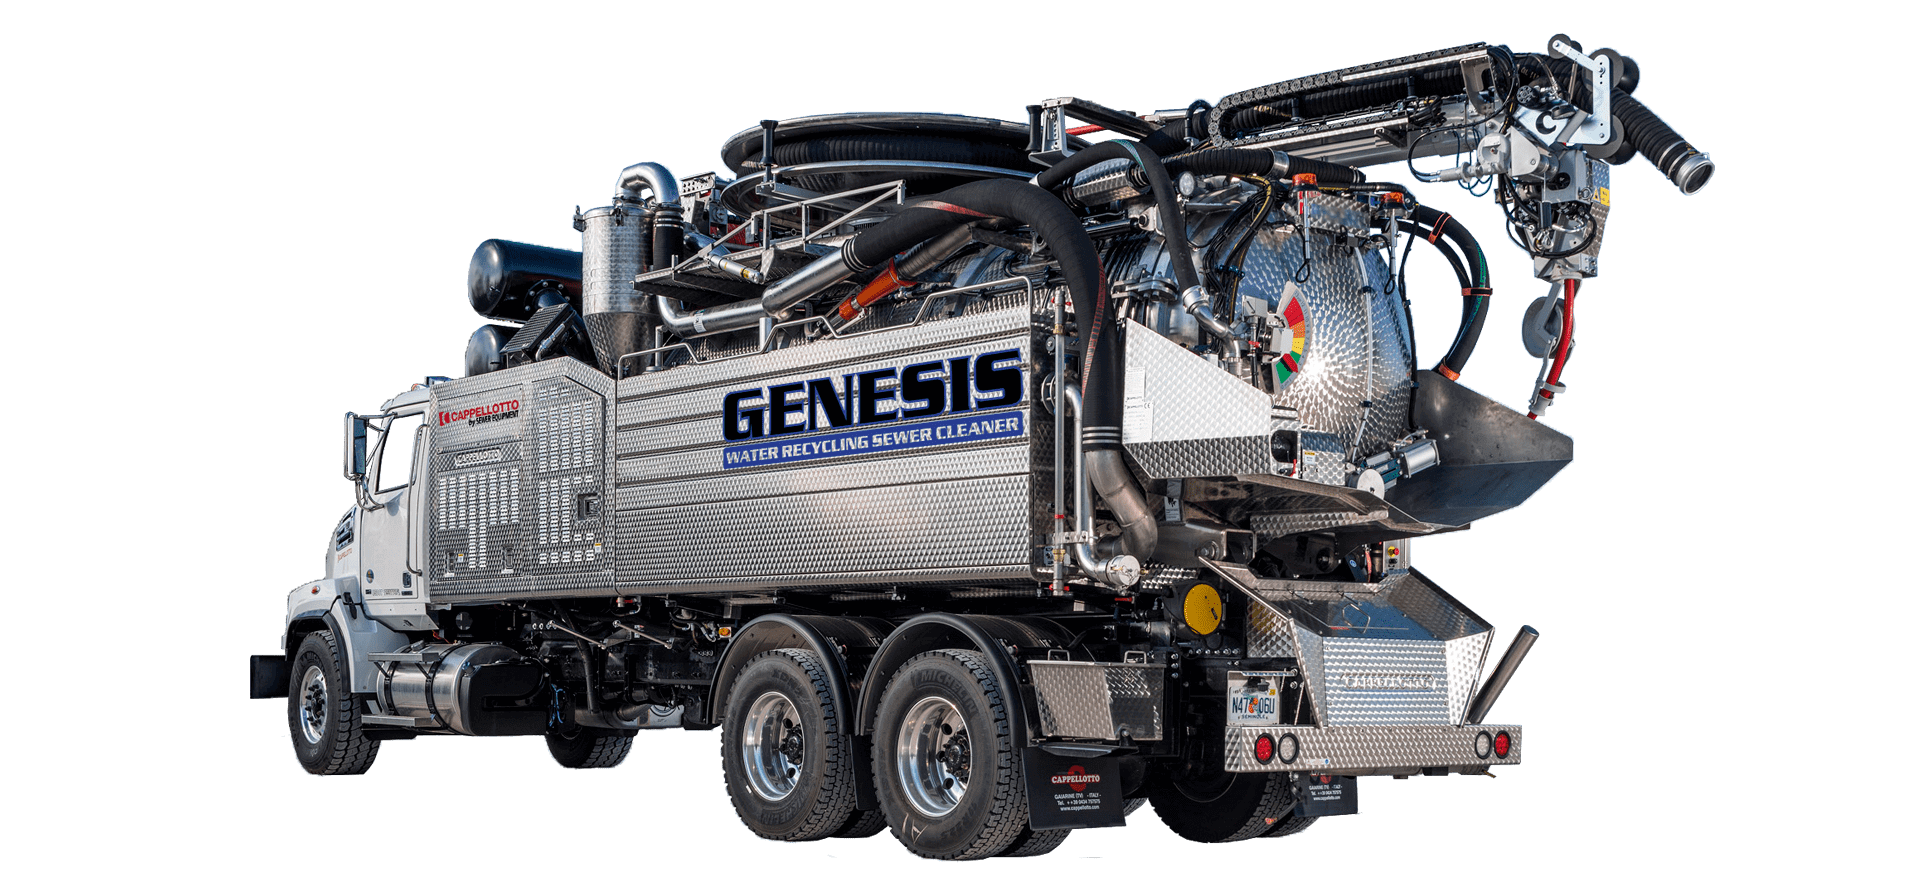 Genesis, Water Recycler Sewer Cleaner, Cappellotto